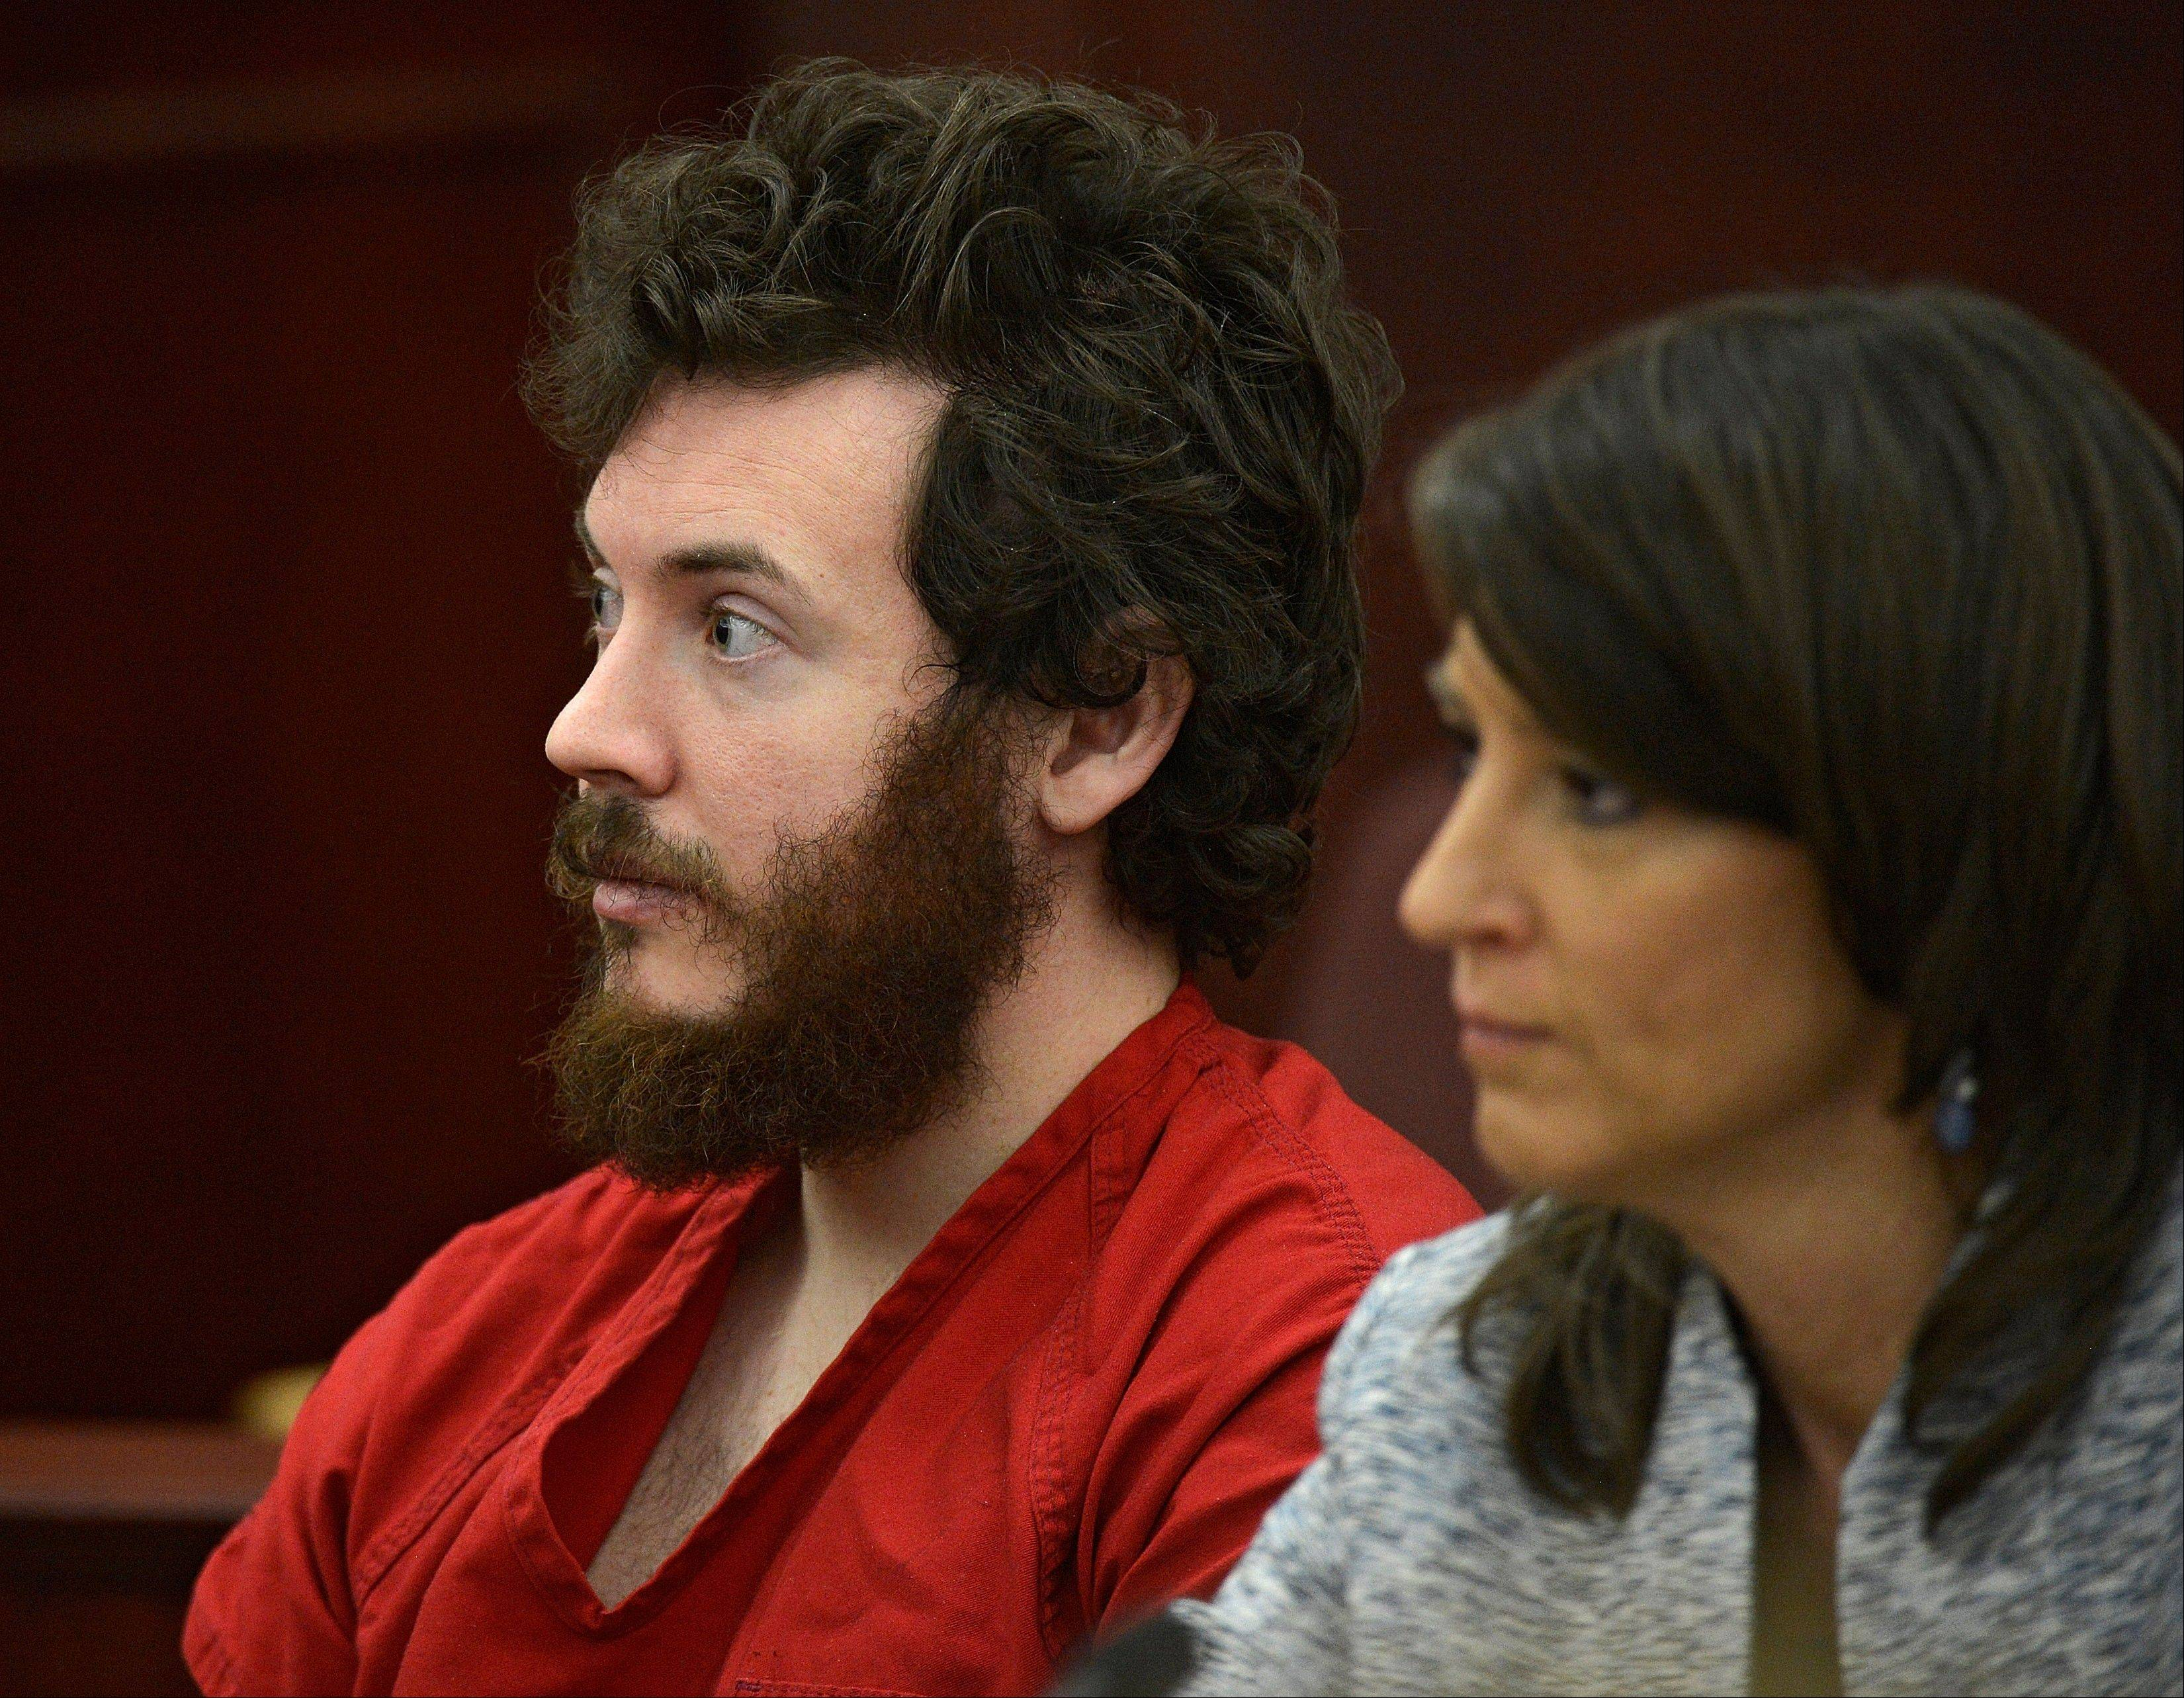 Lawyers for James Holmes, the man accused of killing 12 people and injuring 70 in a Colorado movie theater, said Tuesday May 7, 2013 he wants to change his plea to not guilty by reason of insanity.